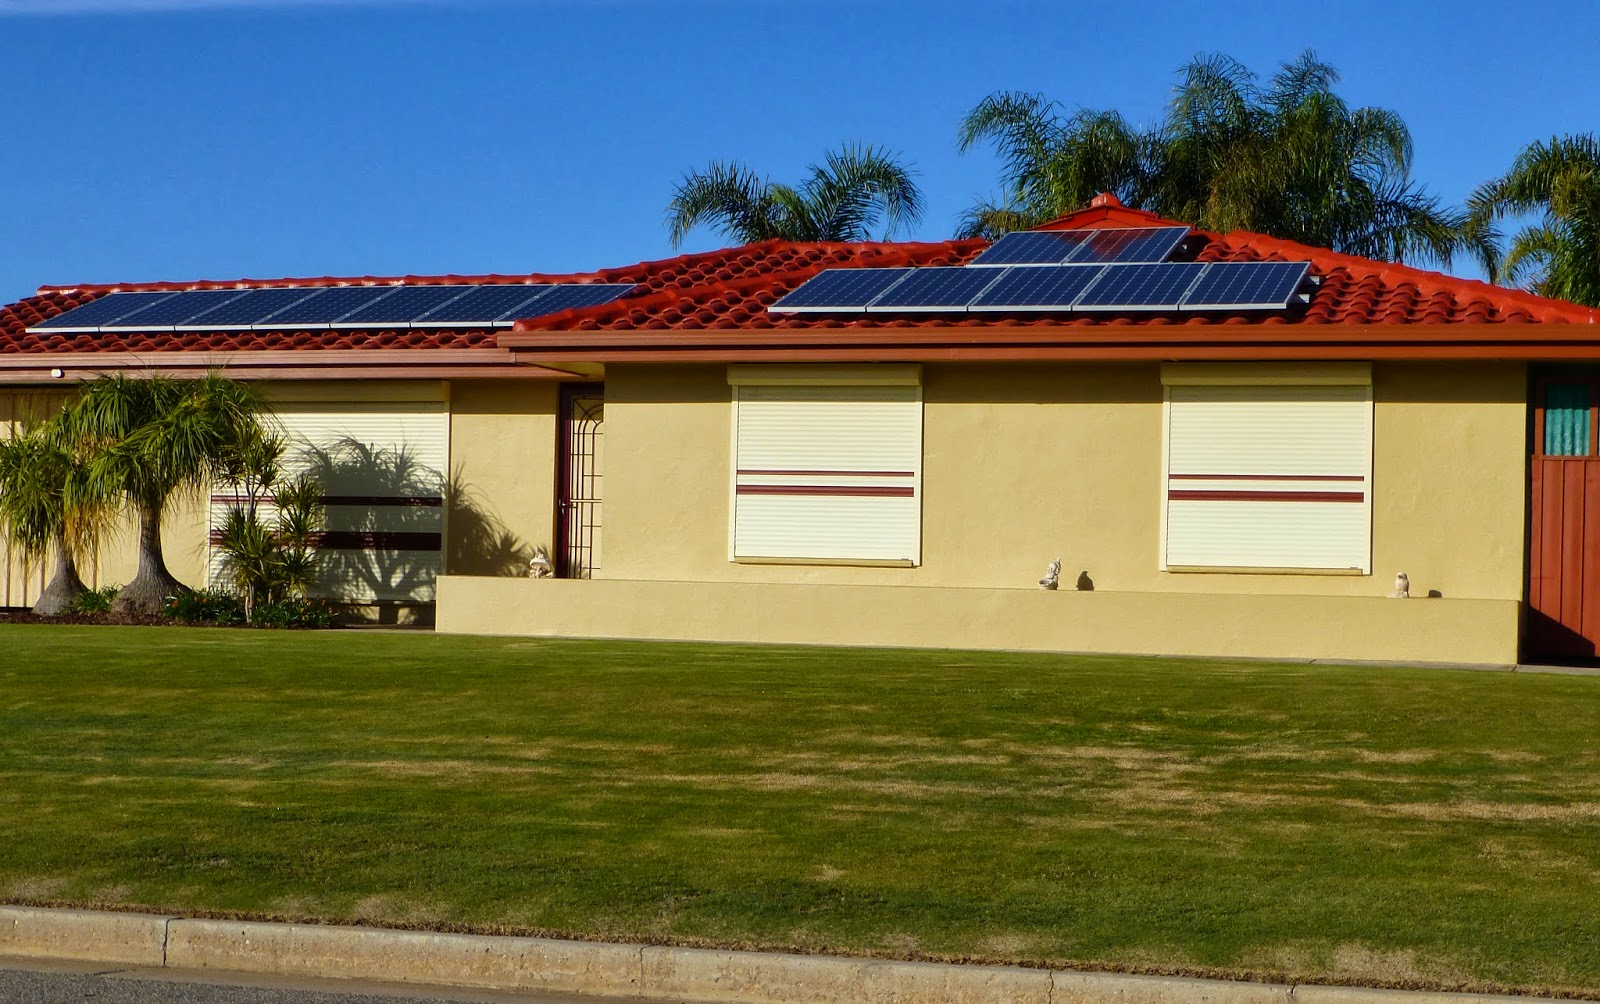 Direct Shutters can fir energy- and cost-efficient roller shutters powered by solar energy